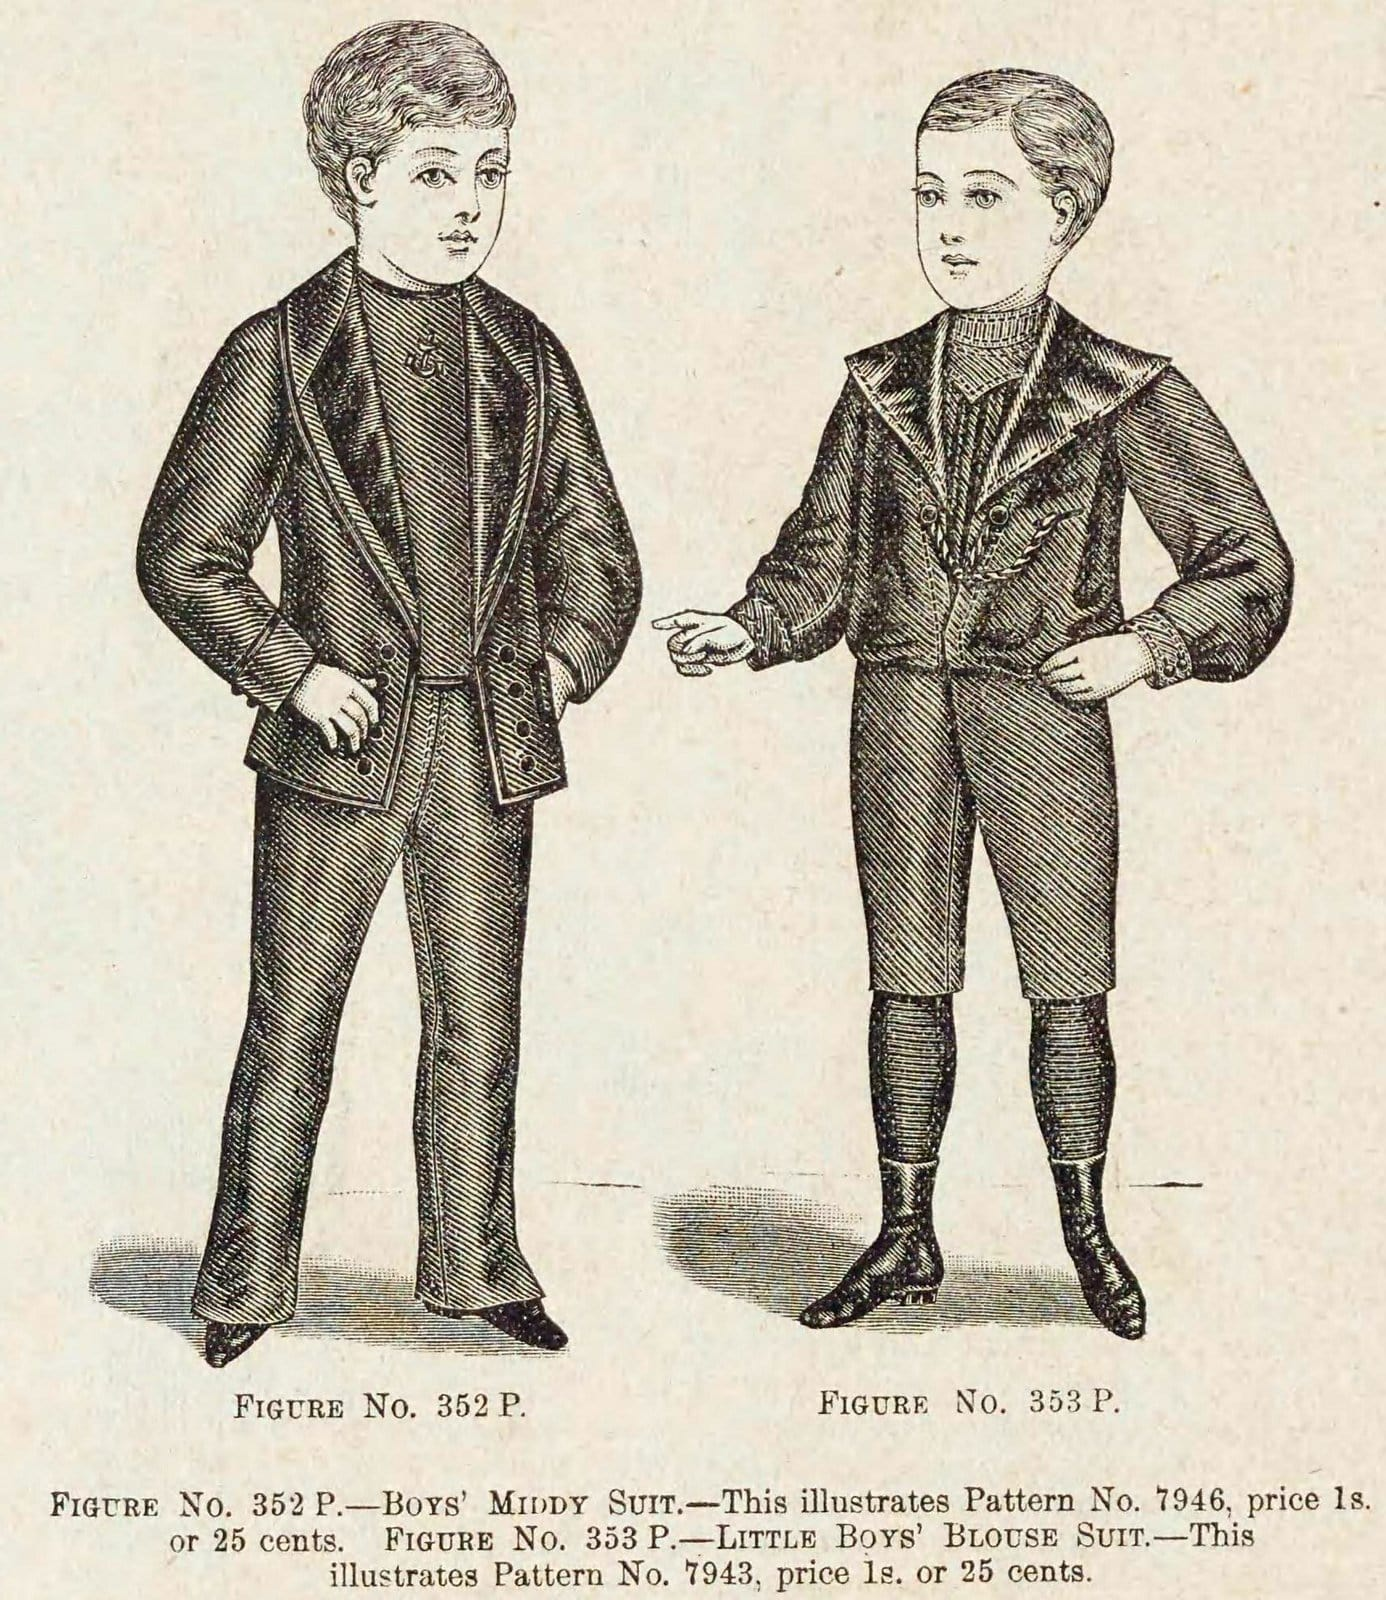 Christmas and winter fashions for Victorian-era boys in the late 1890s (2)